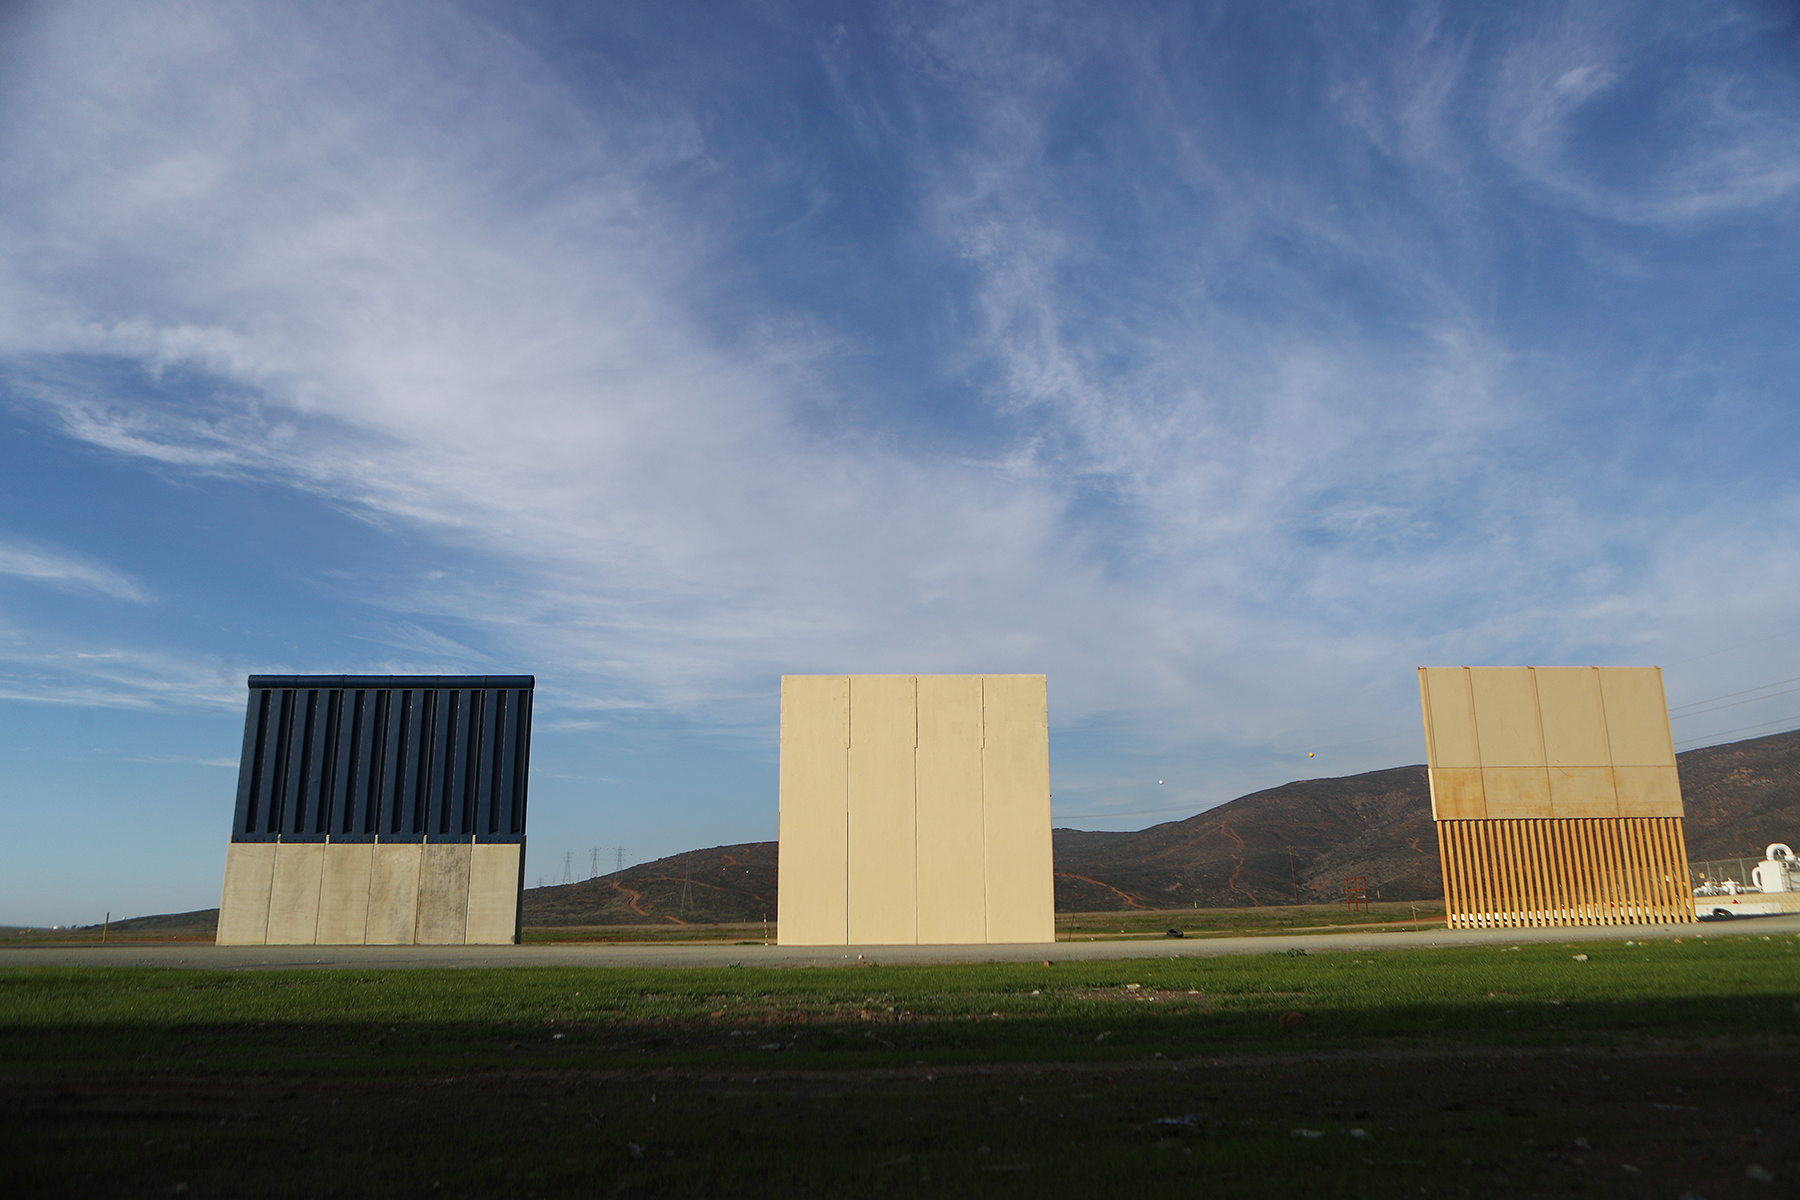 President Trump's border wall prototypes are displayed on the U.S. side of the U.S.-Mexico border on January 9, 2019 as seen from Tijuana, Mexico. President Trump is planning a visit to the southern border in Texas. (Photo by Mario Tama/Getty Images)